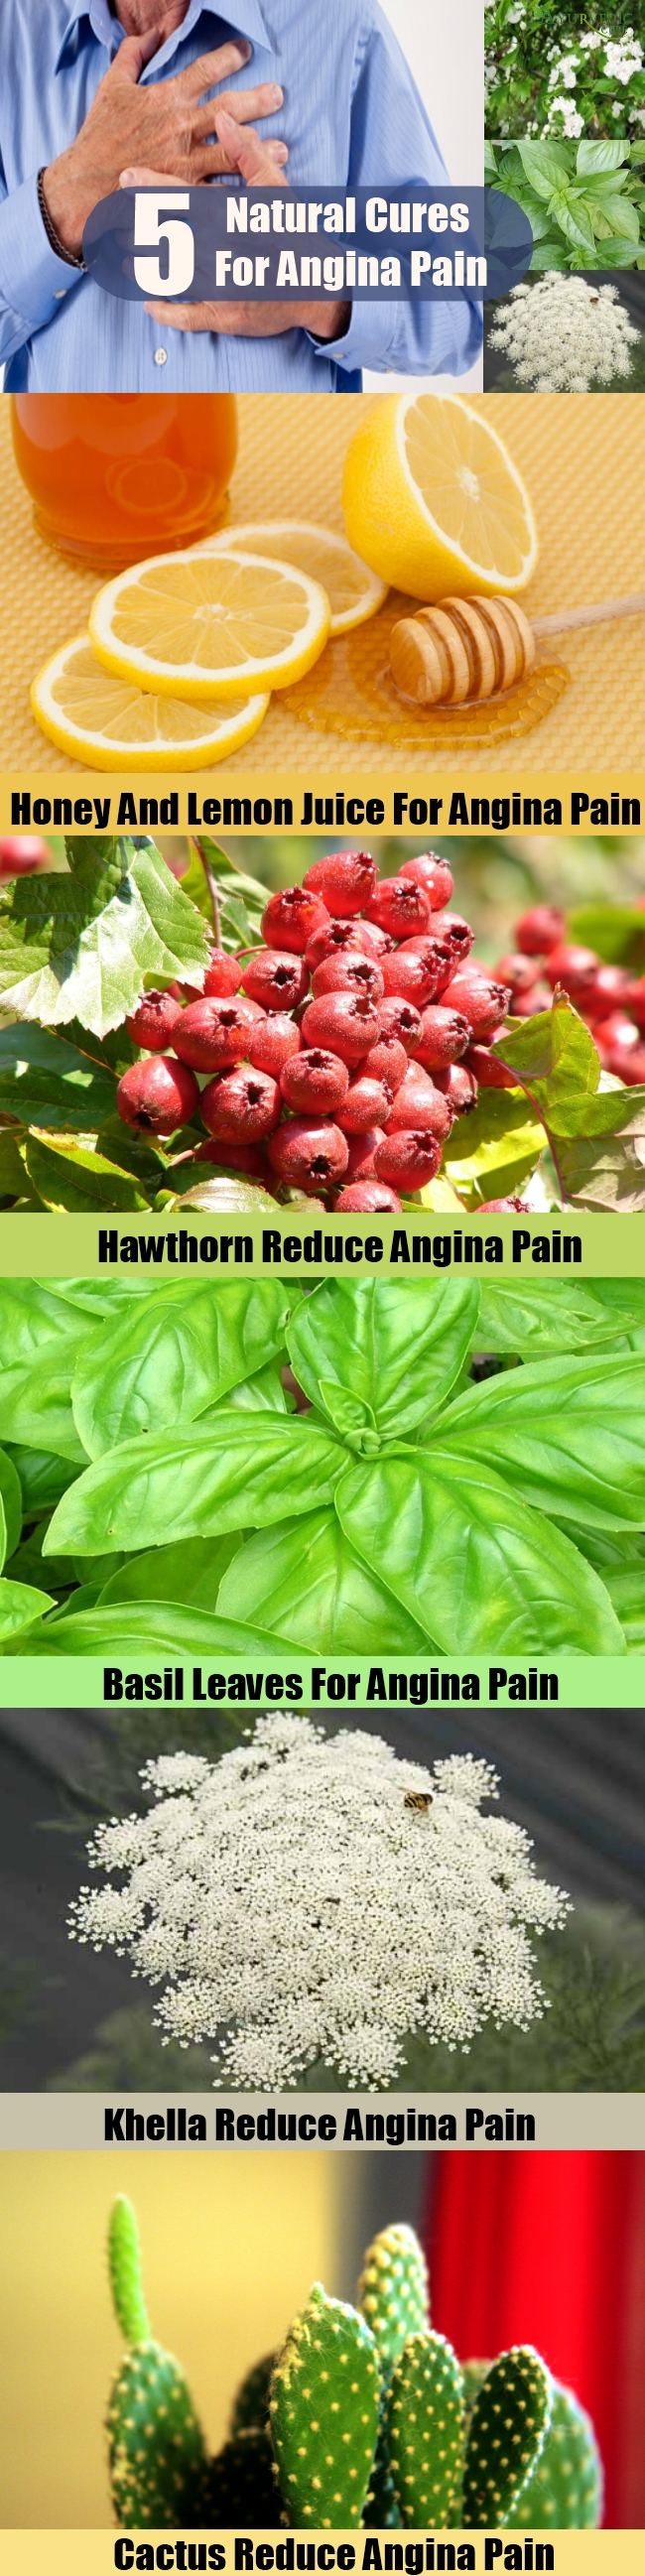 Effective Natural Cures For Angina Pain